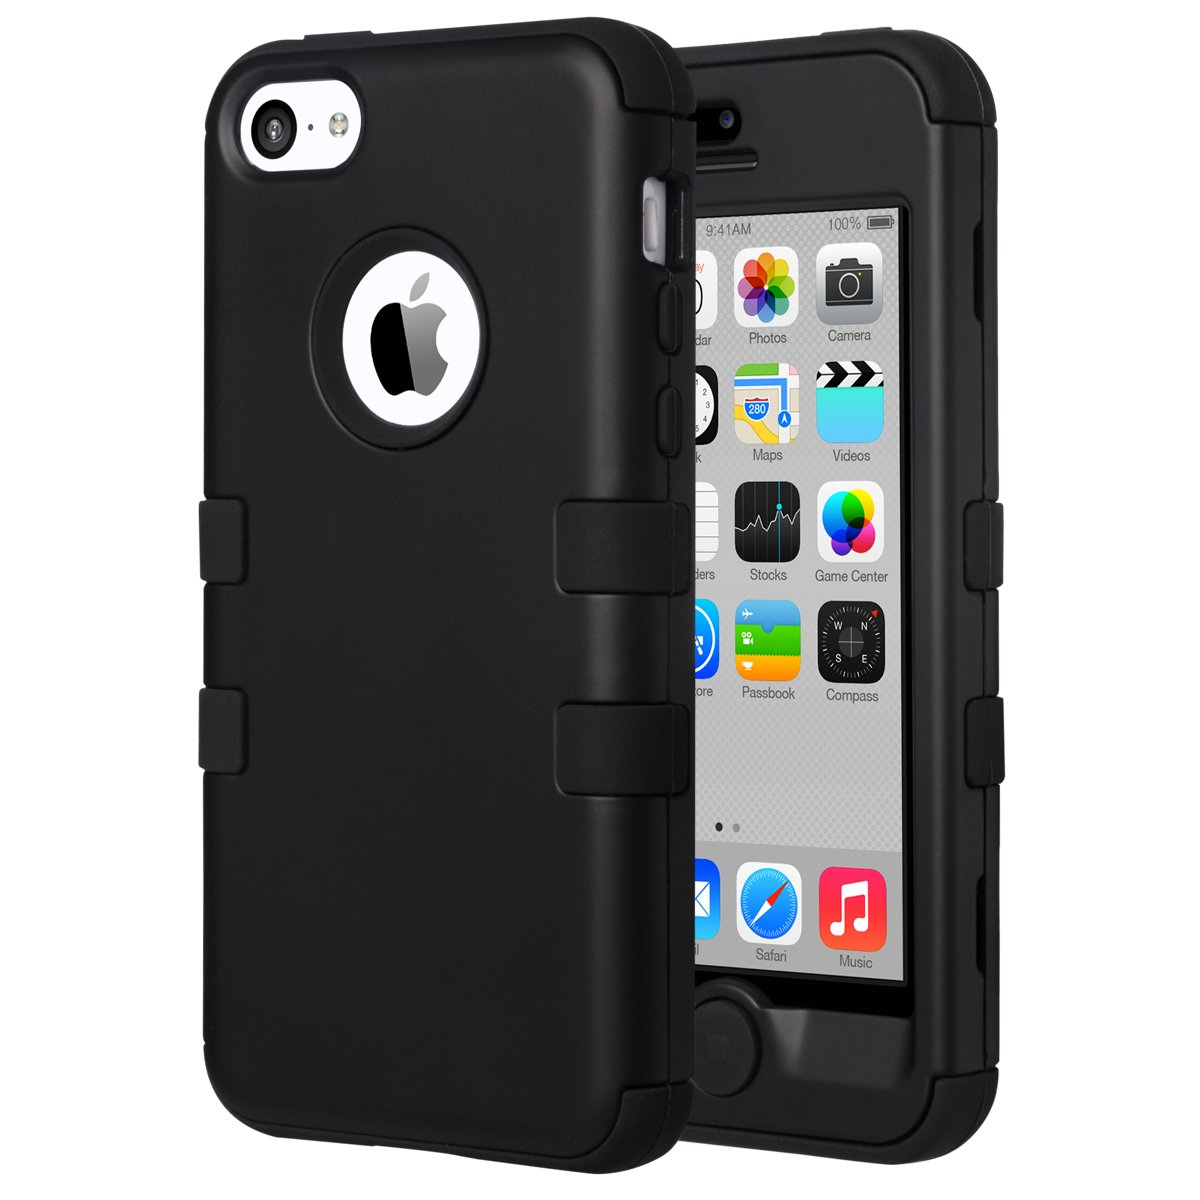 purchase cheap c0064 388a1 ULAK iPhone 5C Case, iPhone 5C Case Black, Shockproof Soft Silicone Rubber  Hard Plastic Hybrid Heavy Duty Protection Kidproof High Impact Case Cover  ...